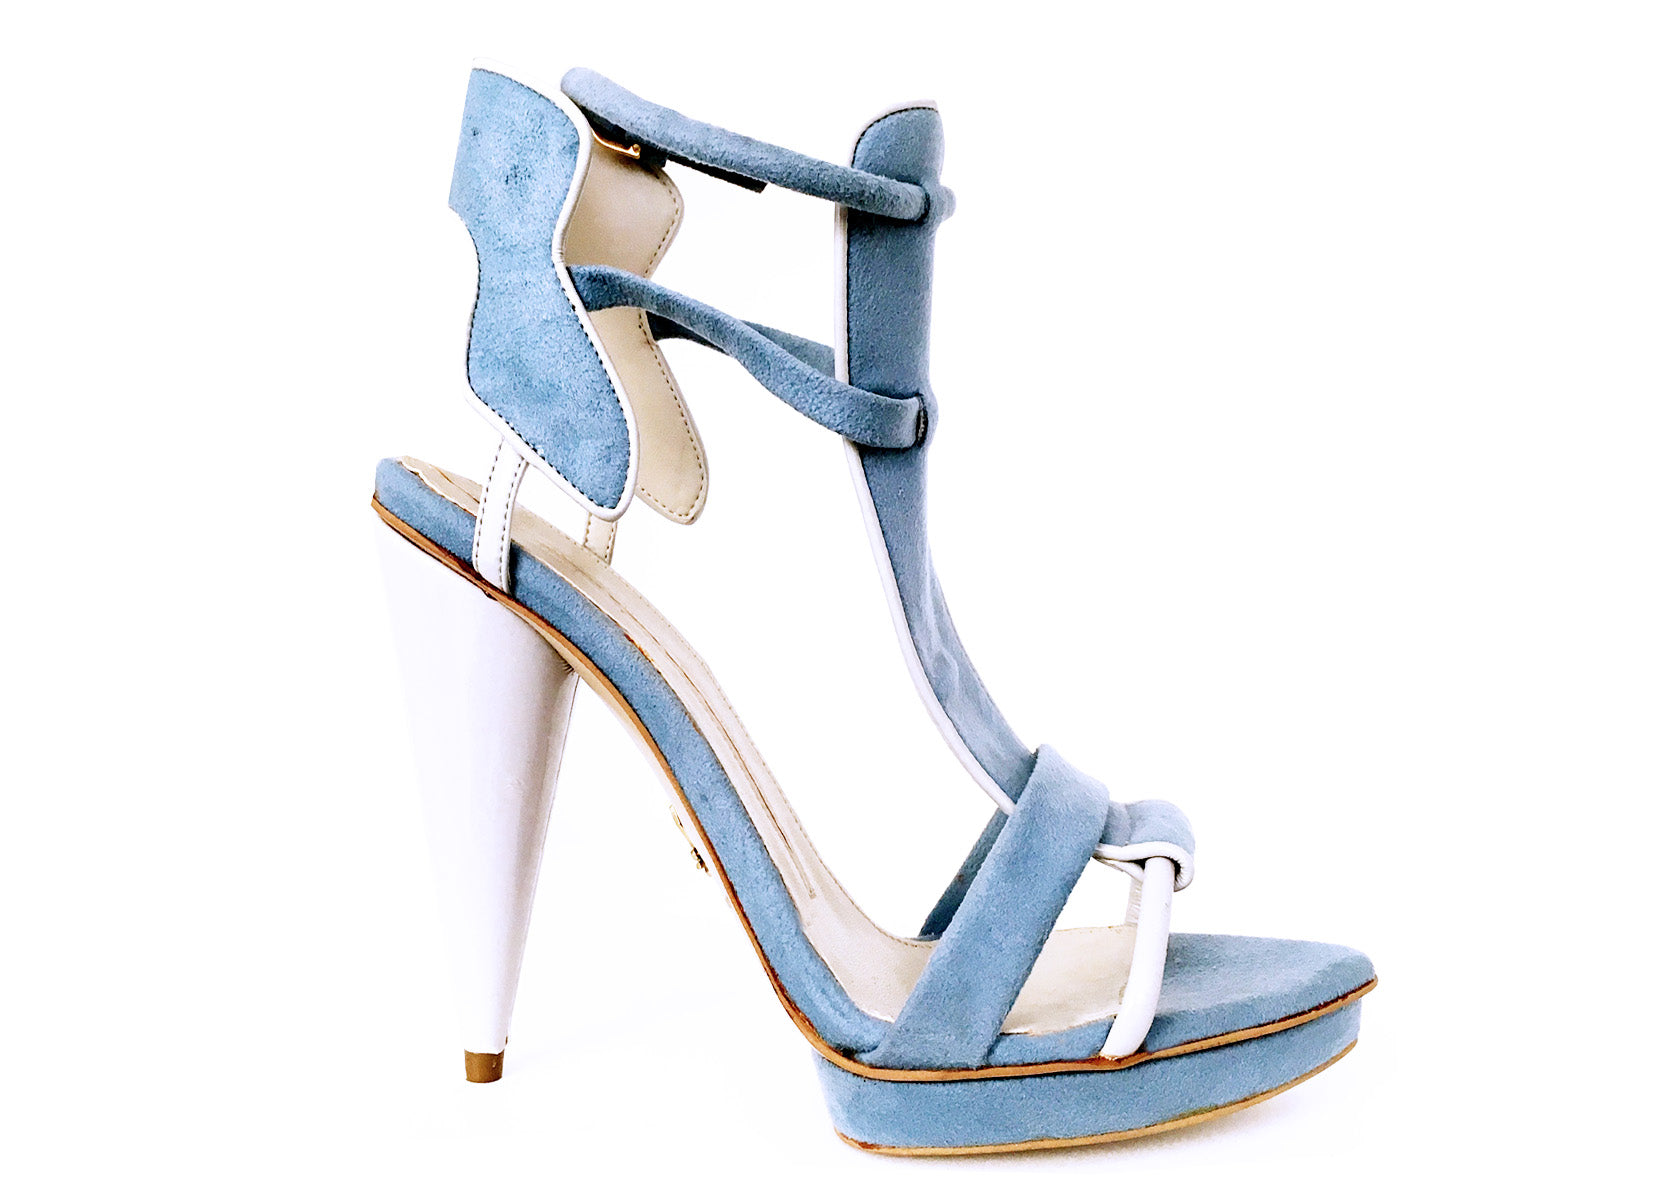 Ruby skyblue sandal